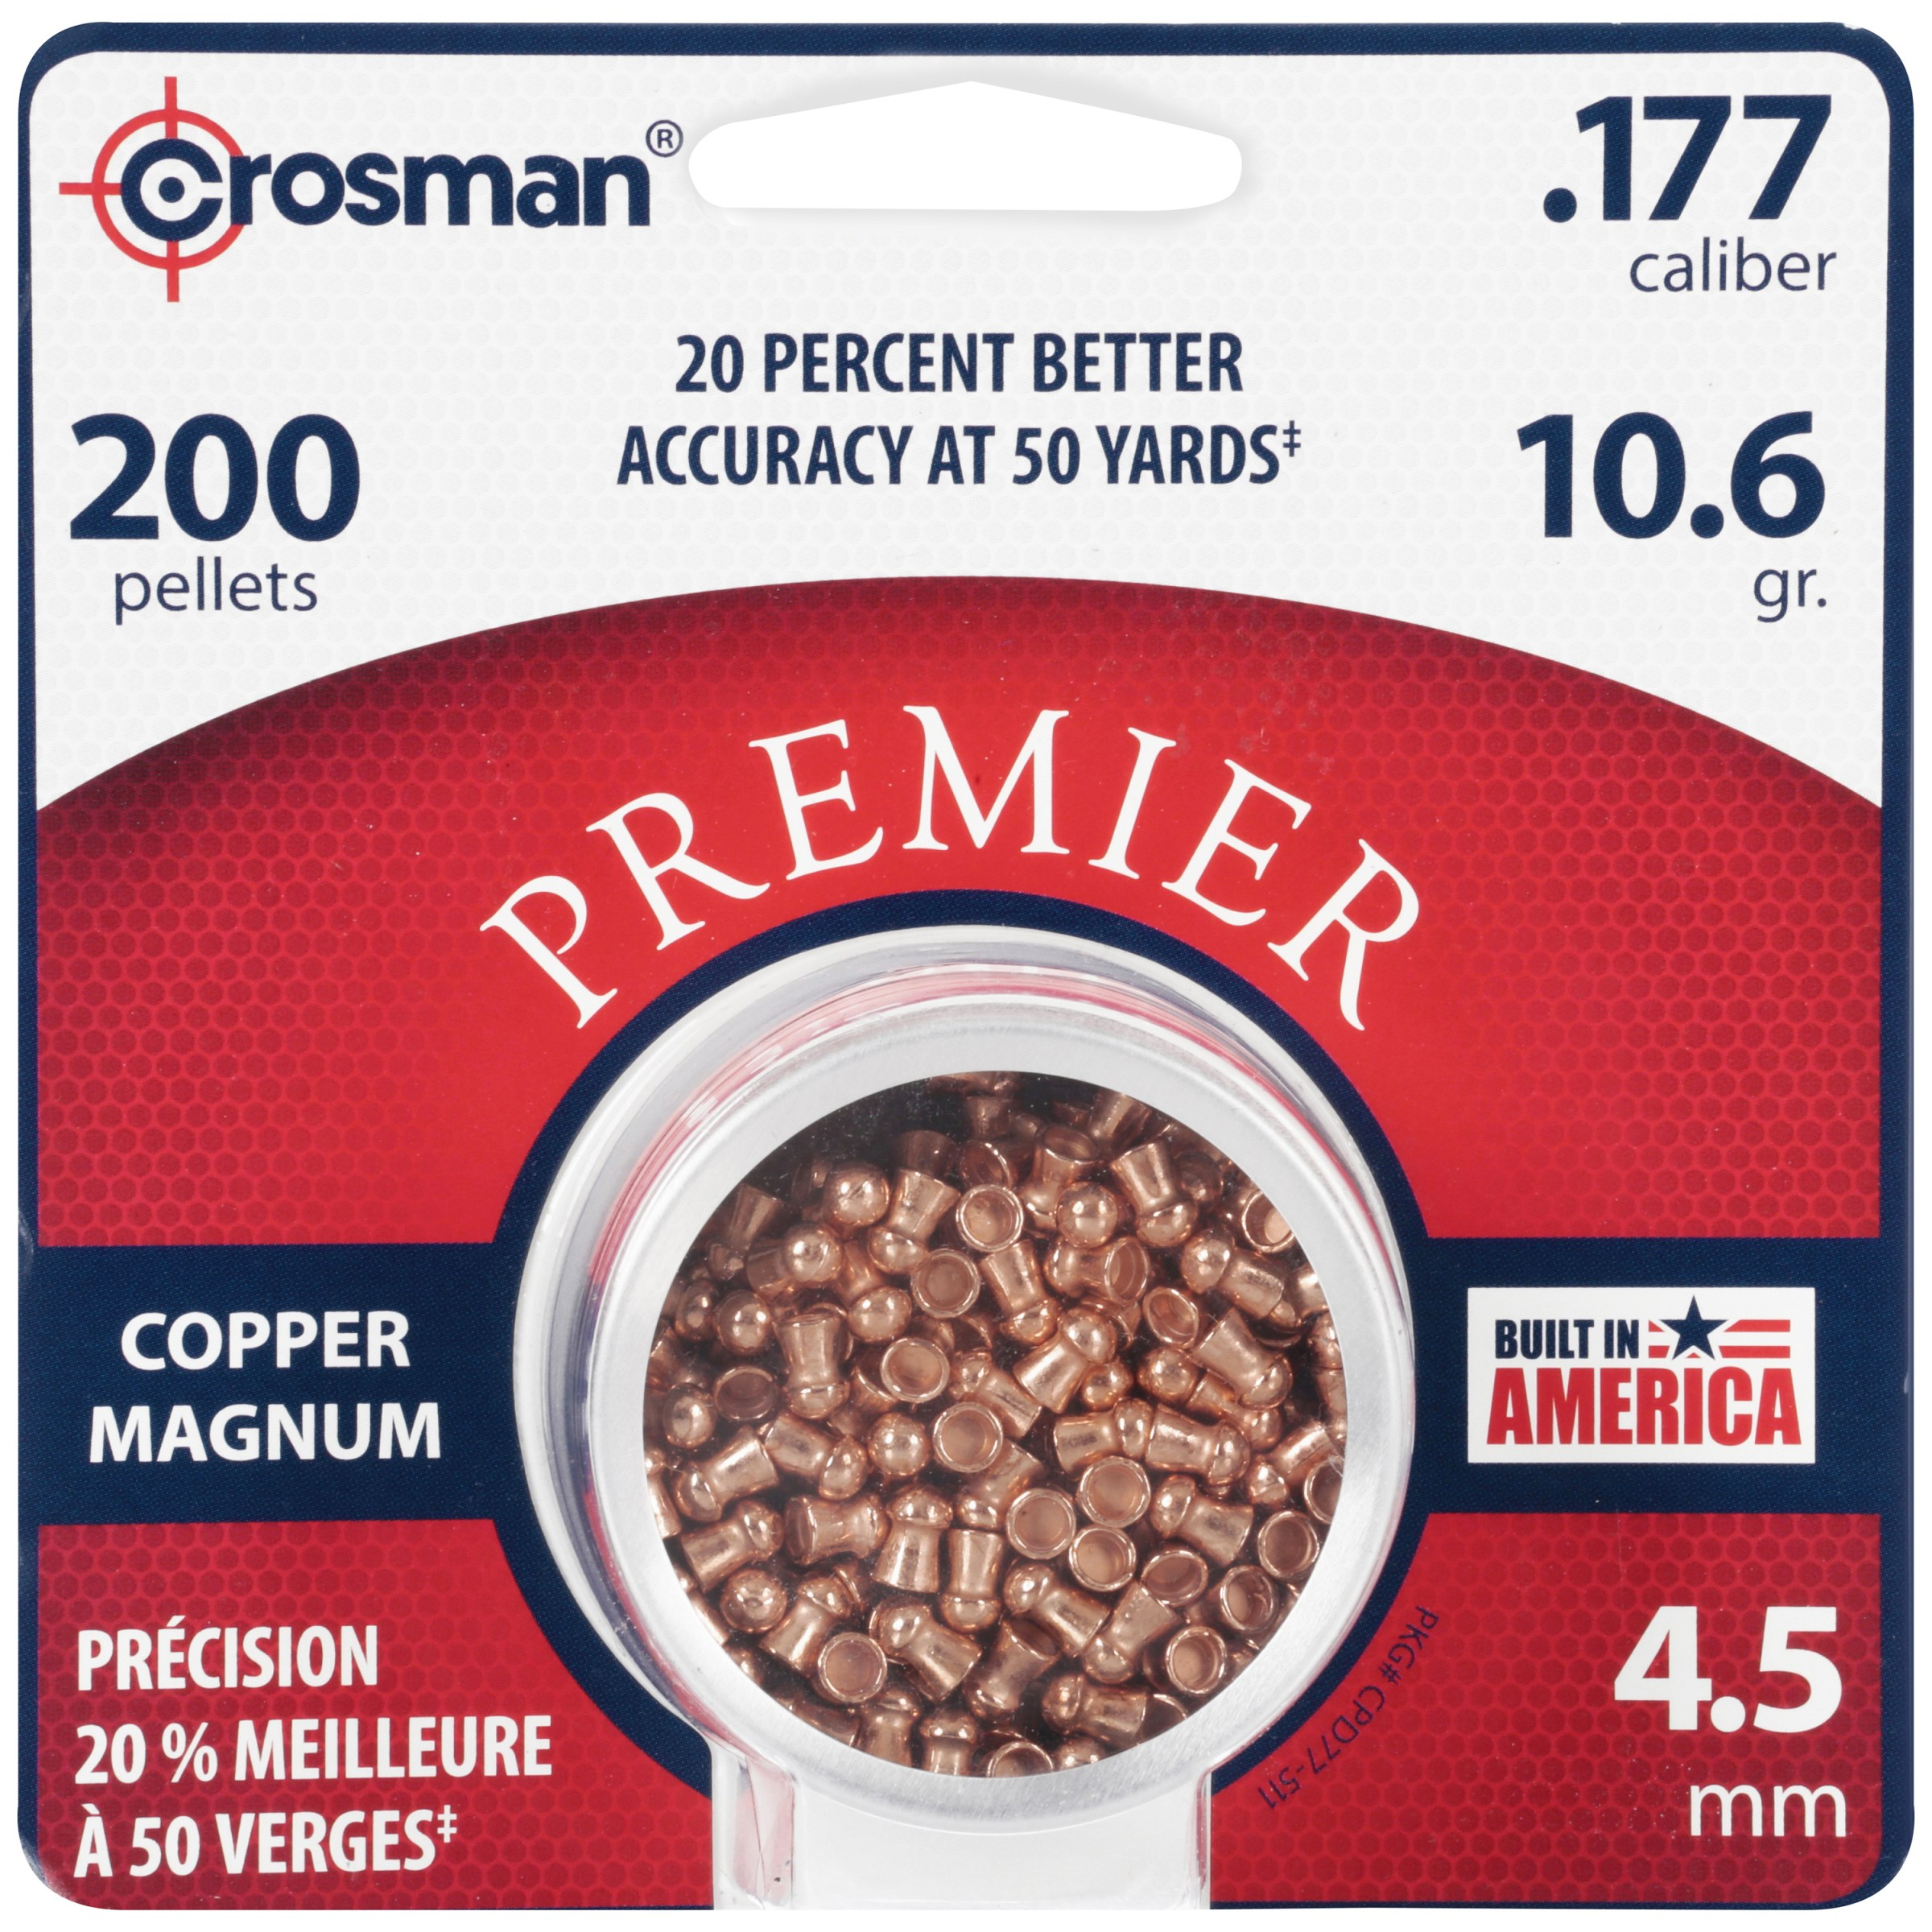 Crosman Copper Magnum Domed Pellet .177 Caliber 10.6 Grain 200Ct. CPD77